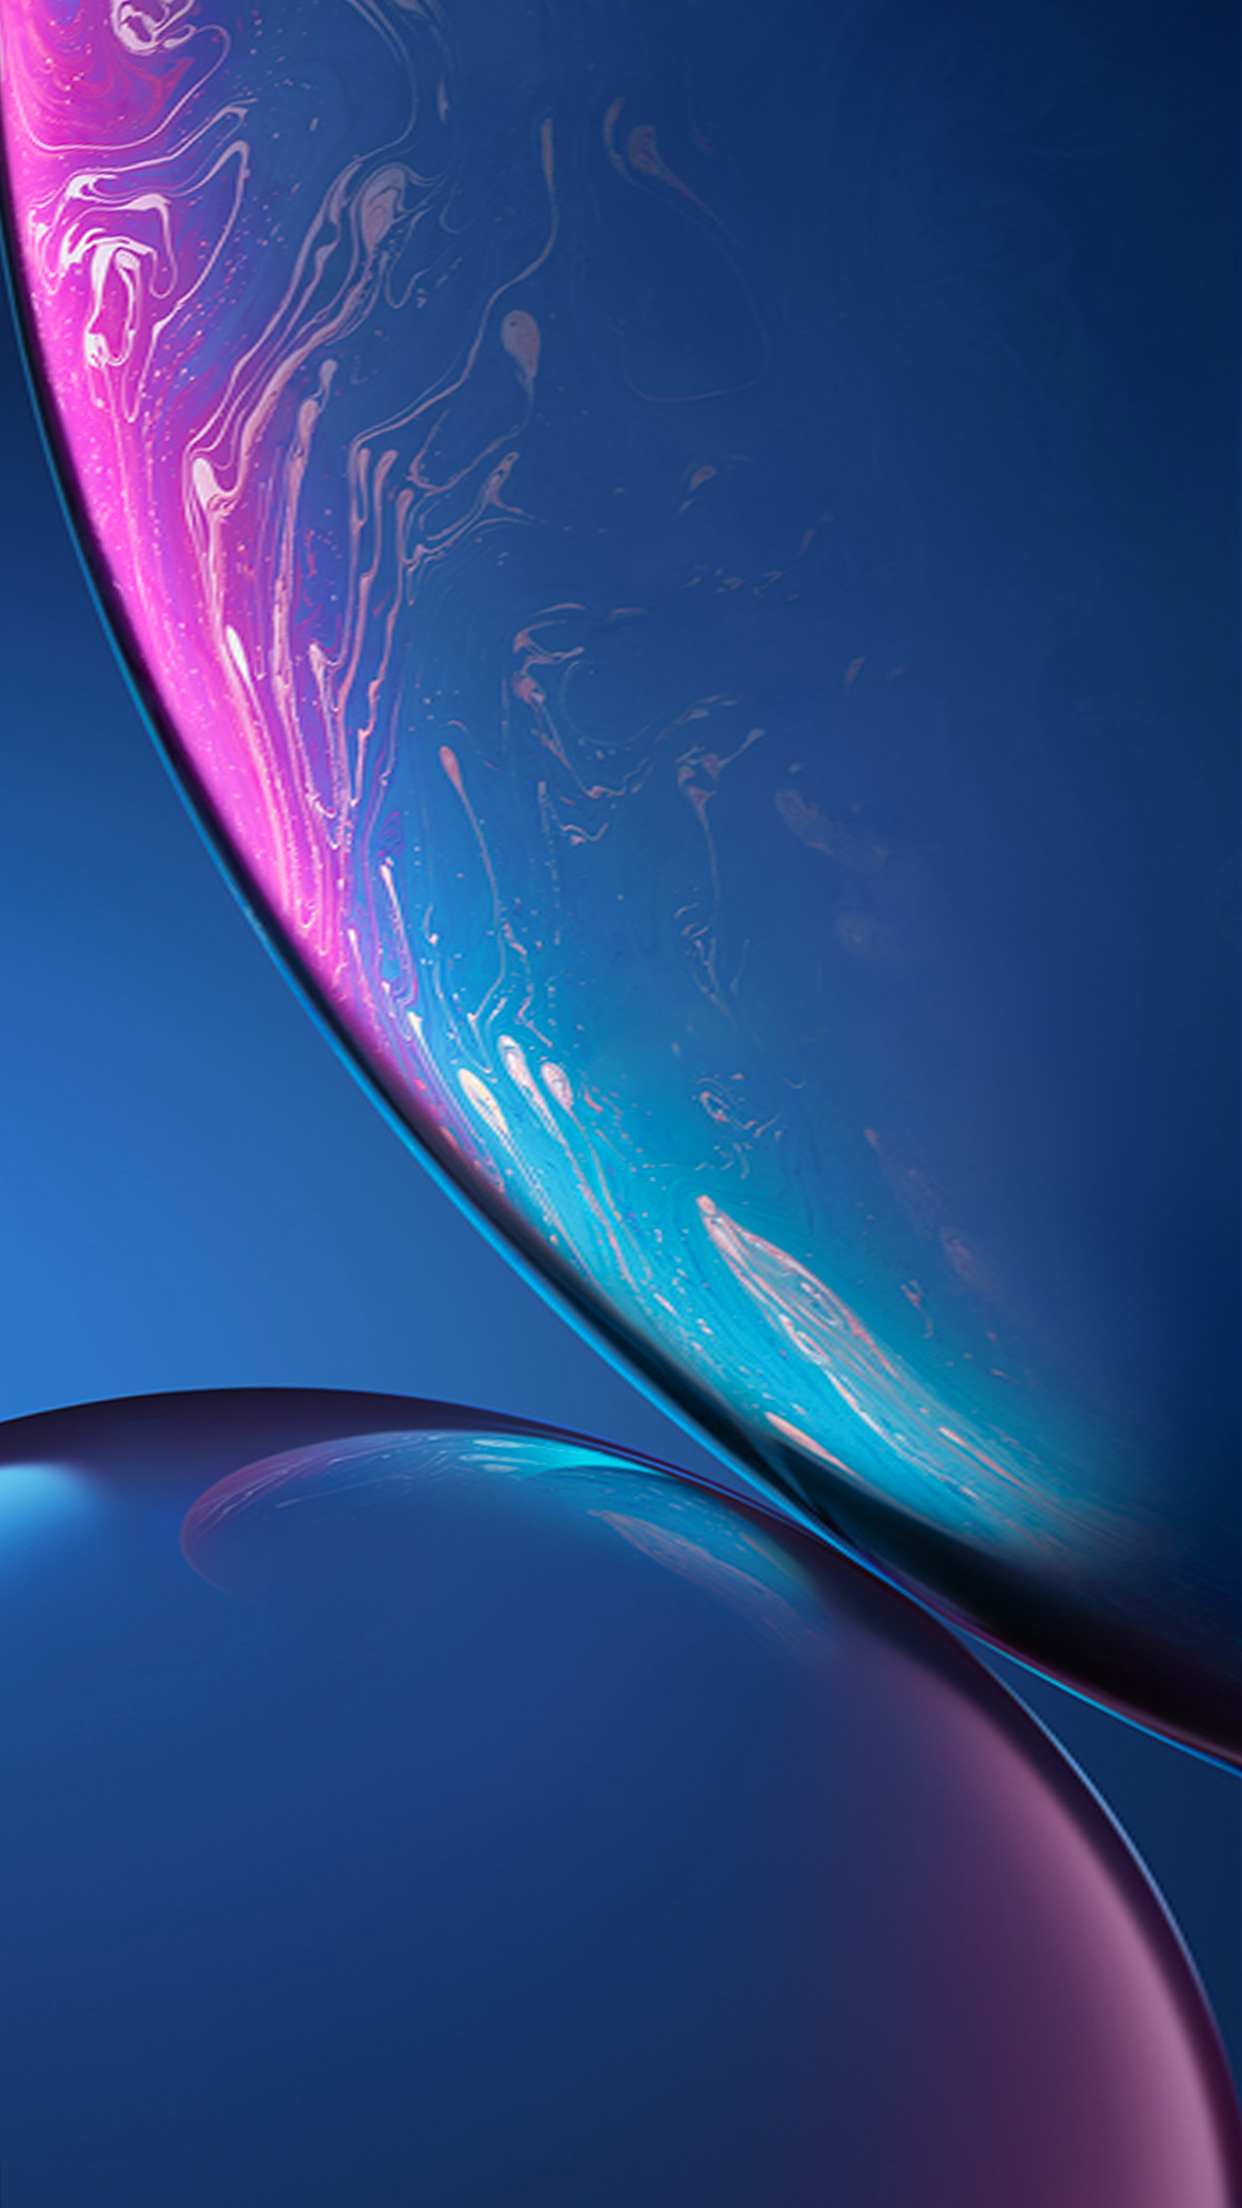 Sfondi Iphone Xs E Xs Max Download Wallpaper Ufficiali Tuttotechnet